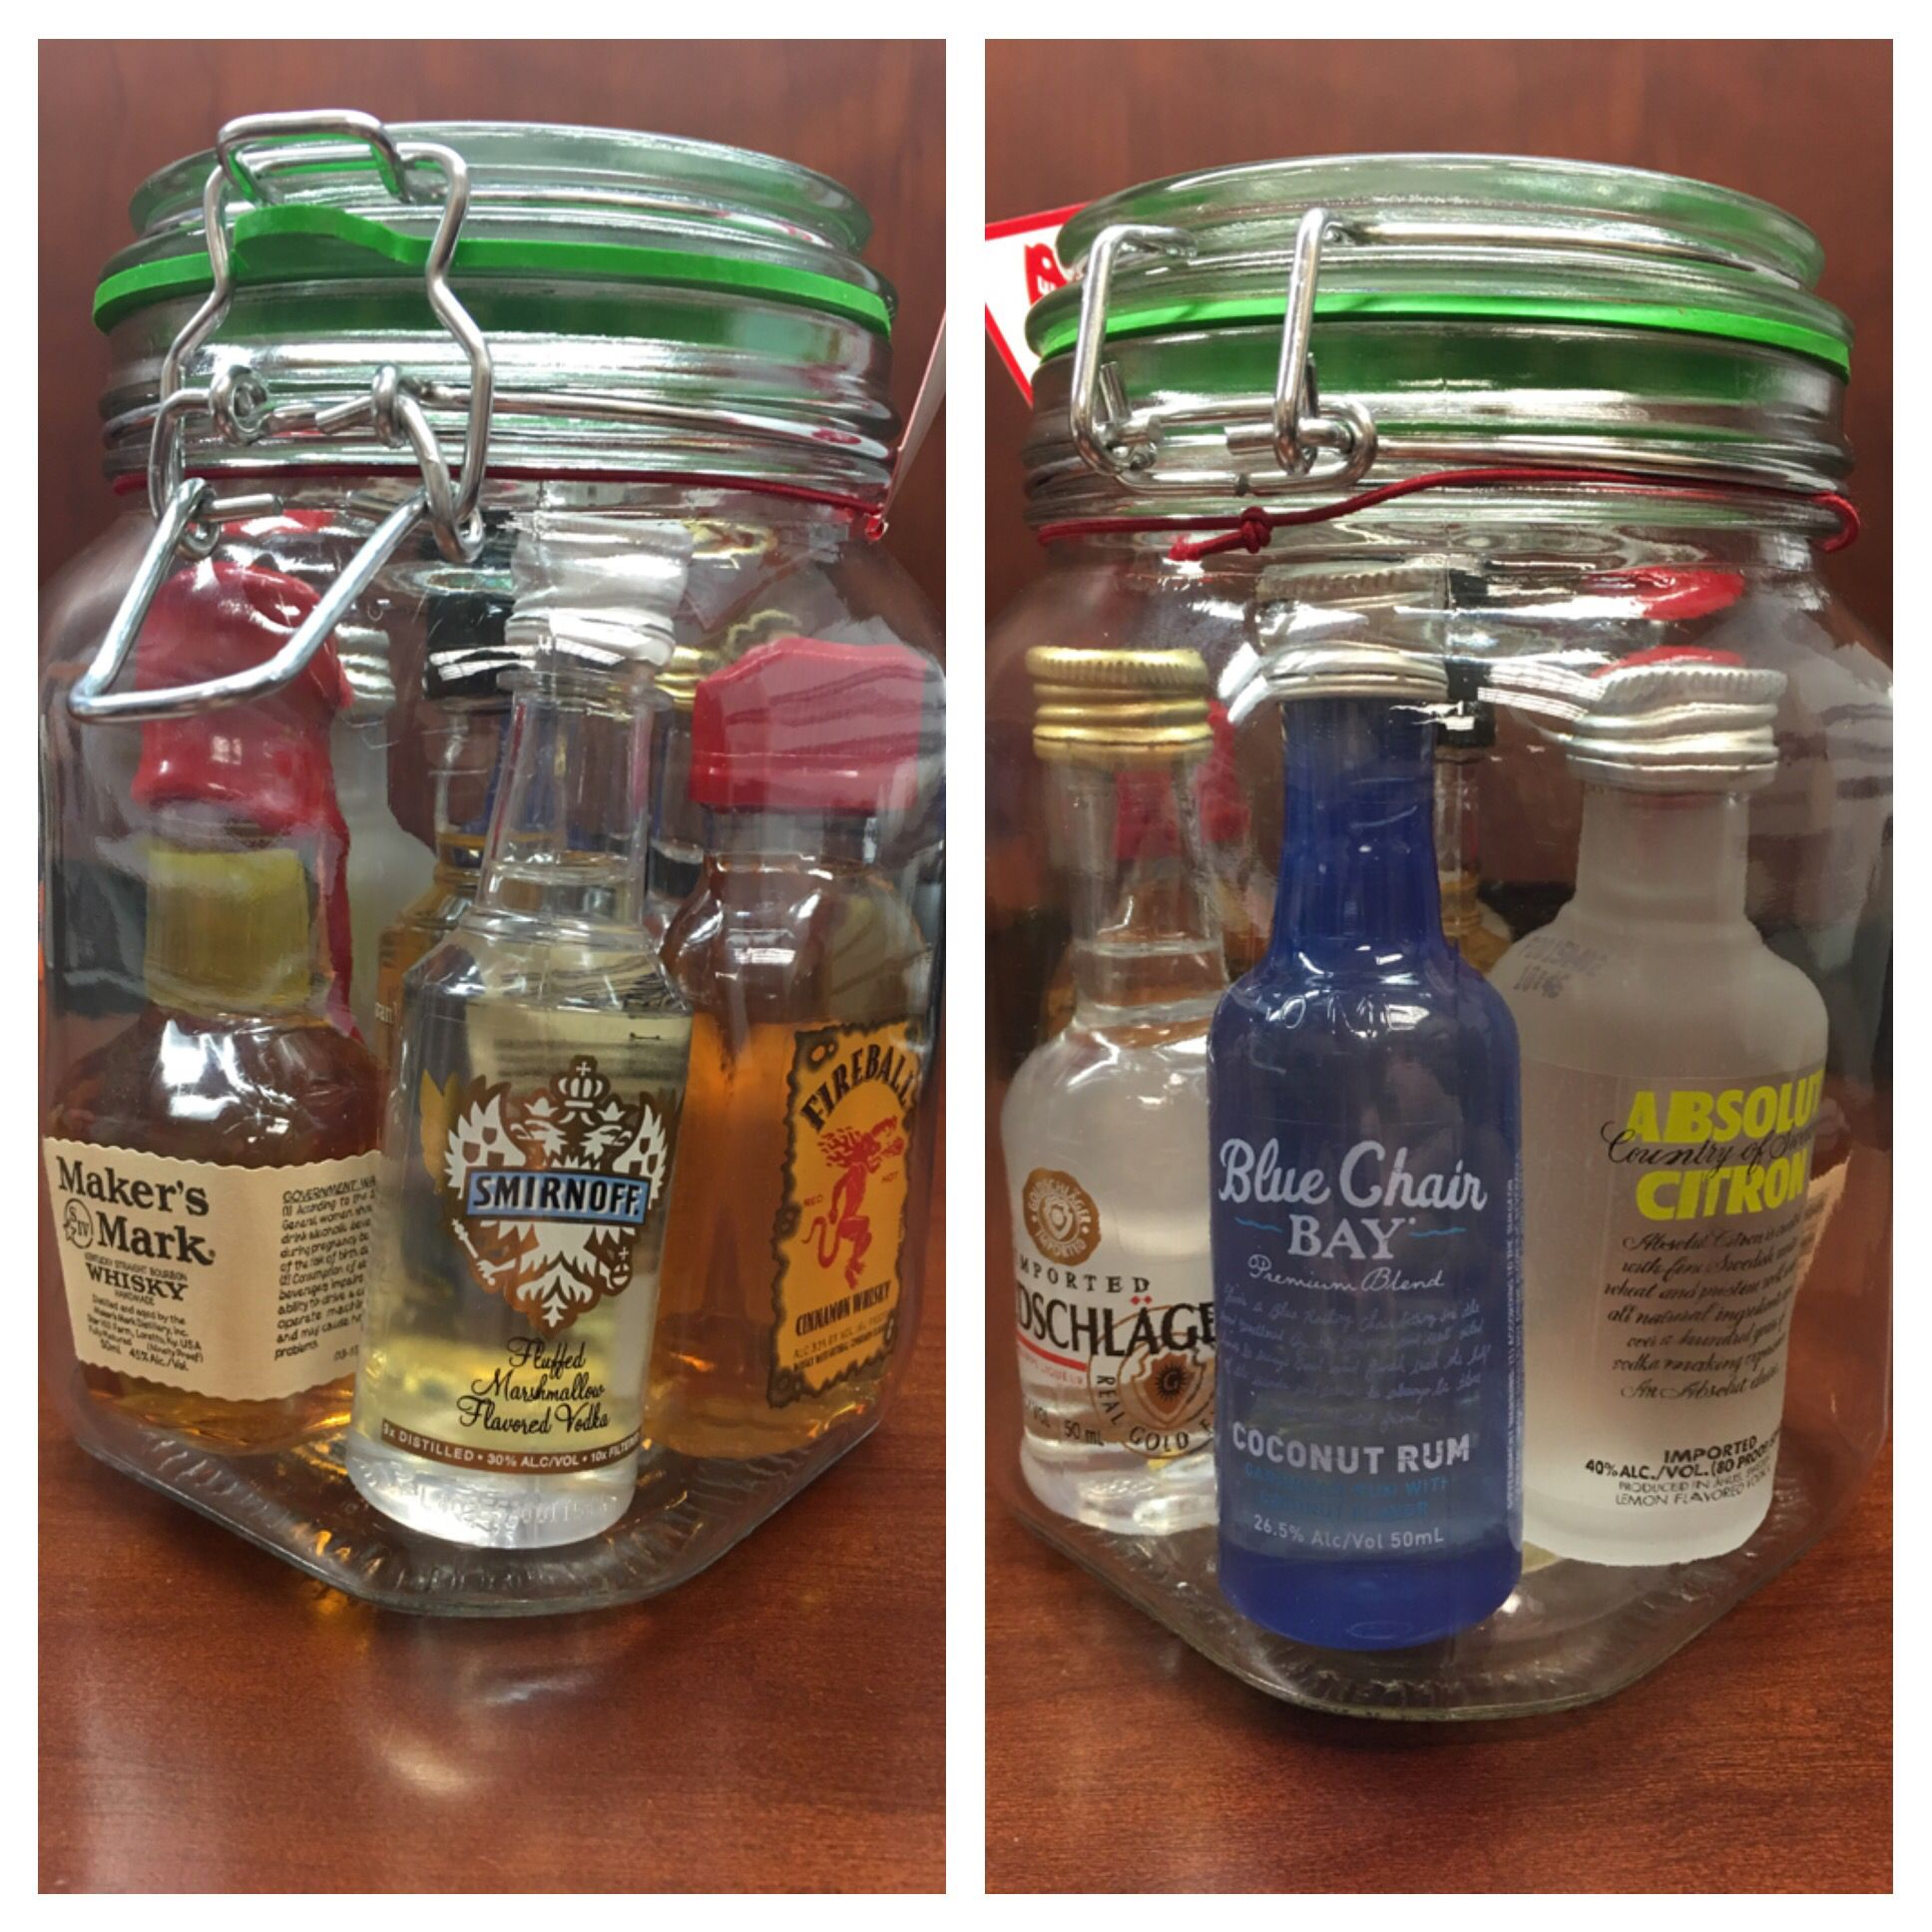 Mini Bar In A Jar All For 20 Jar 3 Ish At Walmart Mini Bottles 13 Ish For 7 Of Them Go As Big Or Small As You Wan Jar Gifts Alcohol Gifts Elephant Gifts